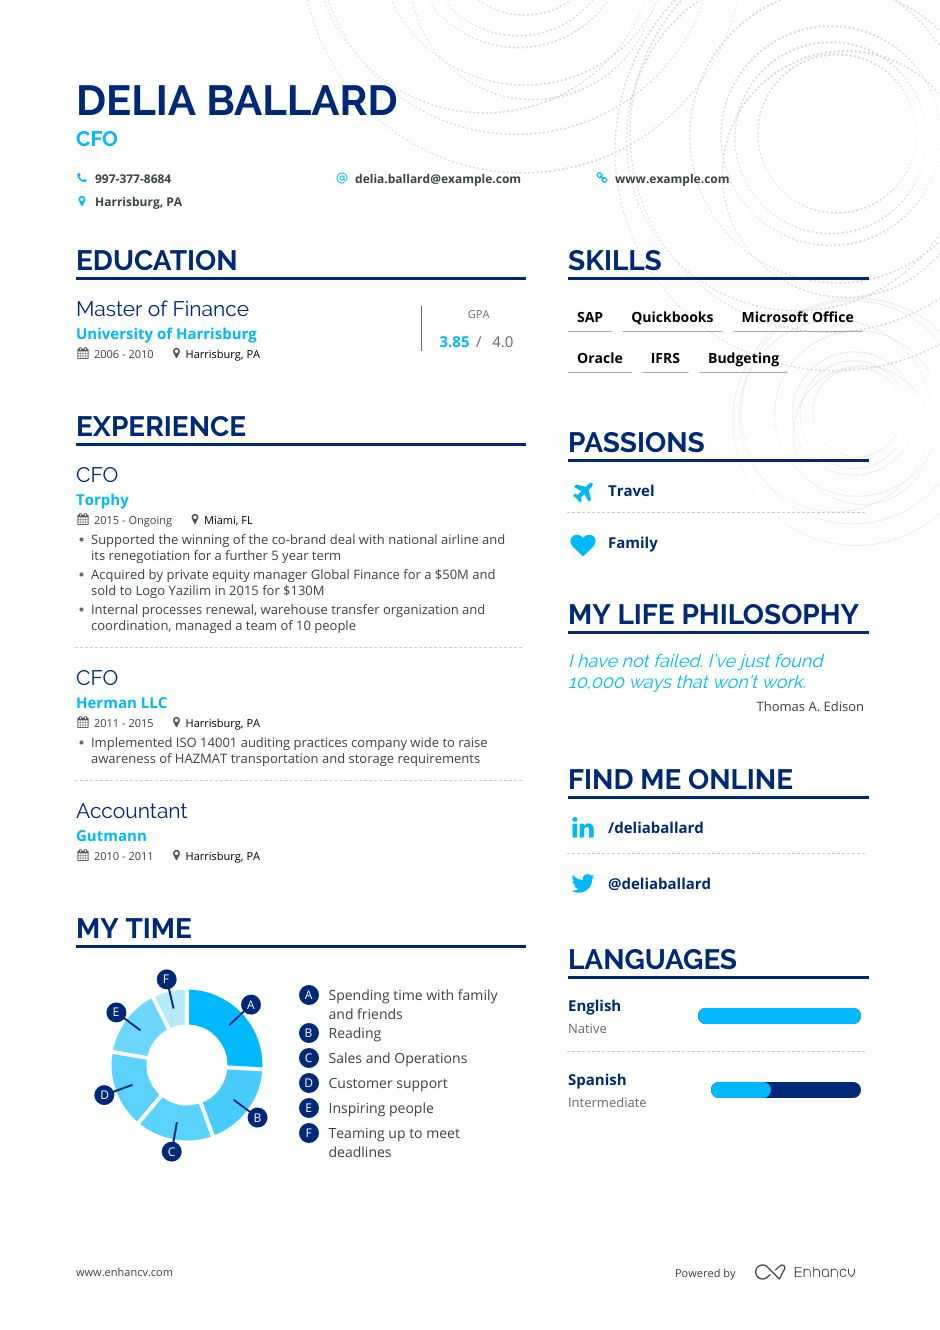 cfo resume examples expert advice enhancv chief accounting officer political science Resume Chief Accounting Officer Resume